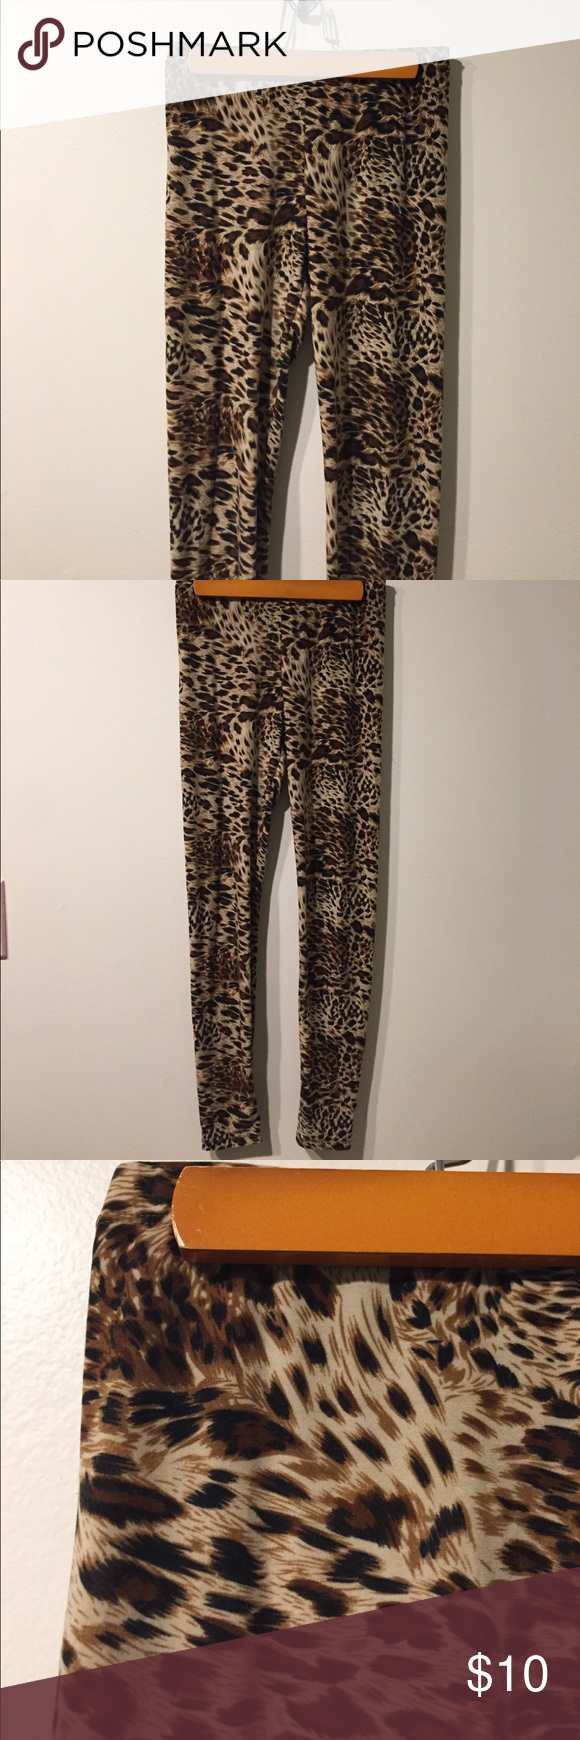 Cheetah Leggings Cheetah Leggings, women's size small, polyester/Cotten blend material, very comfortable, worn a few times for themed parties! Pants Leggings